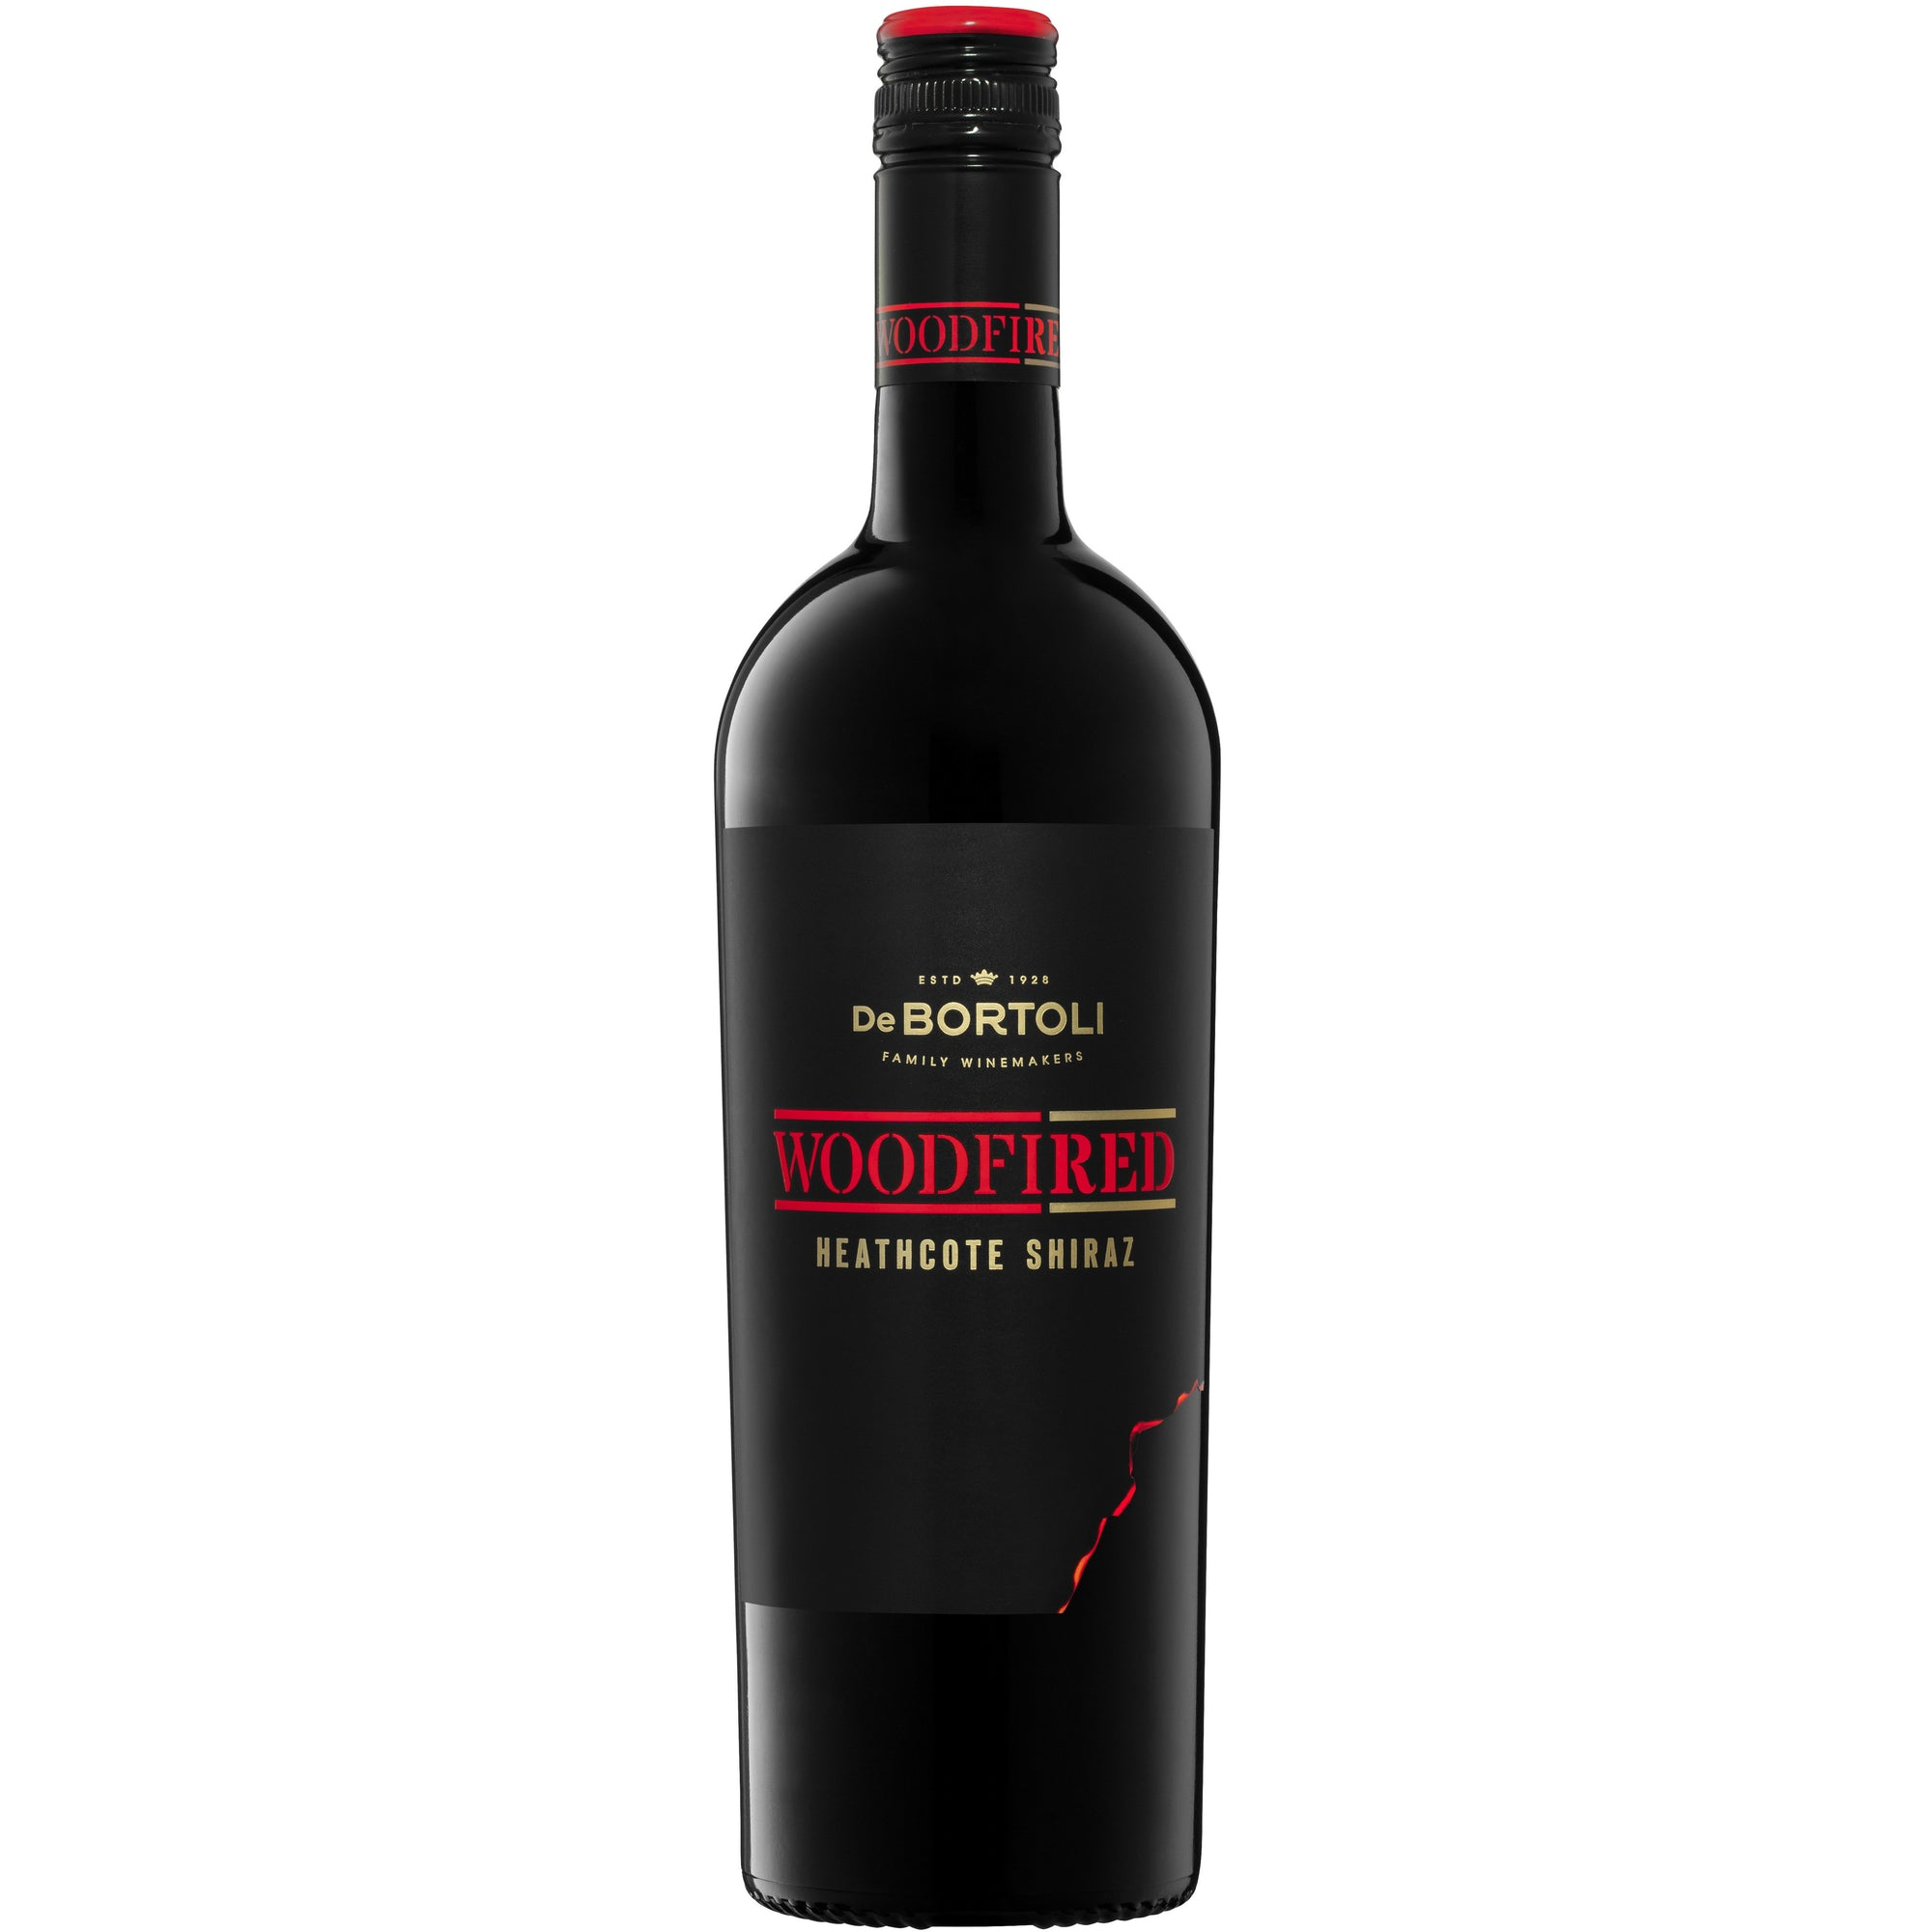 De Bortoli Woodifred Heathcote Shiraz 2018 (6 Bottles)